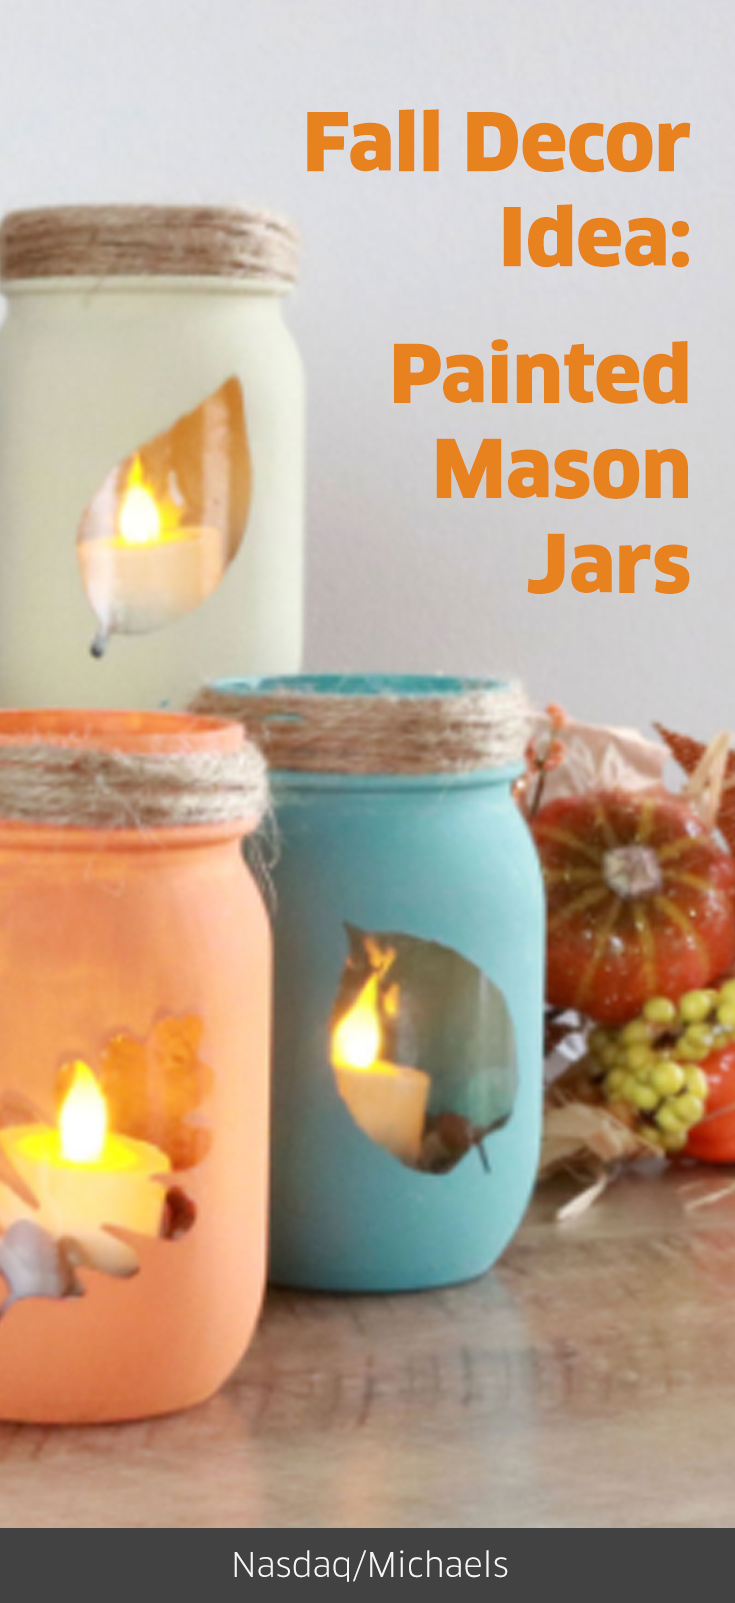 Mason Jars Make For A Great Shabby Chic Craft When Hygge Sets In - Manualidades-shabby-chic